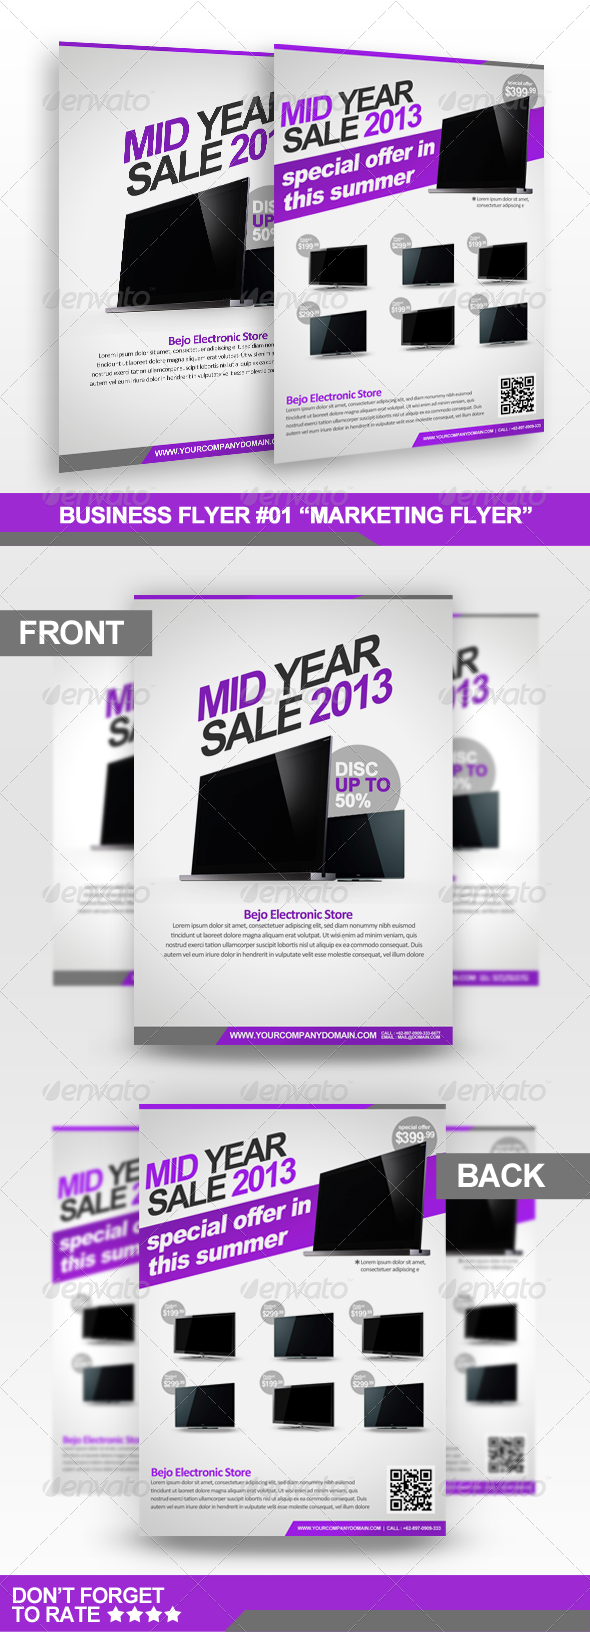 GraphicRiver Business Flyer Marketing Template 01 5404574